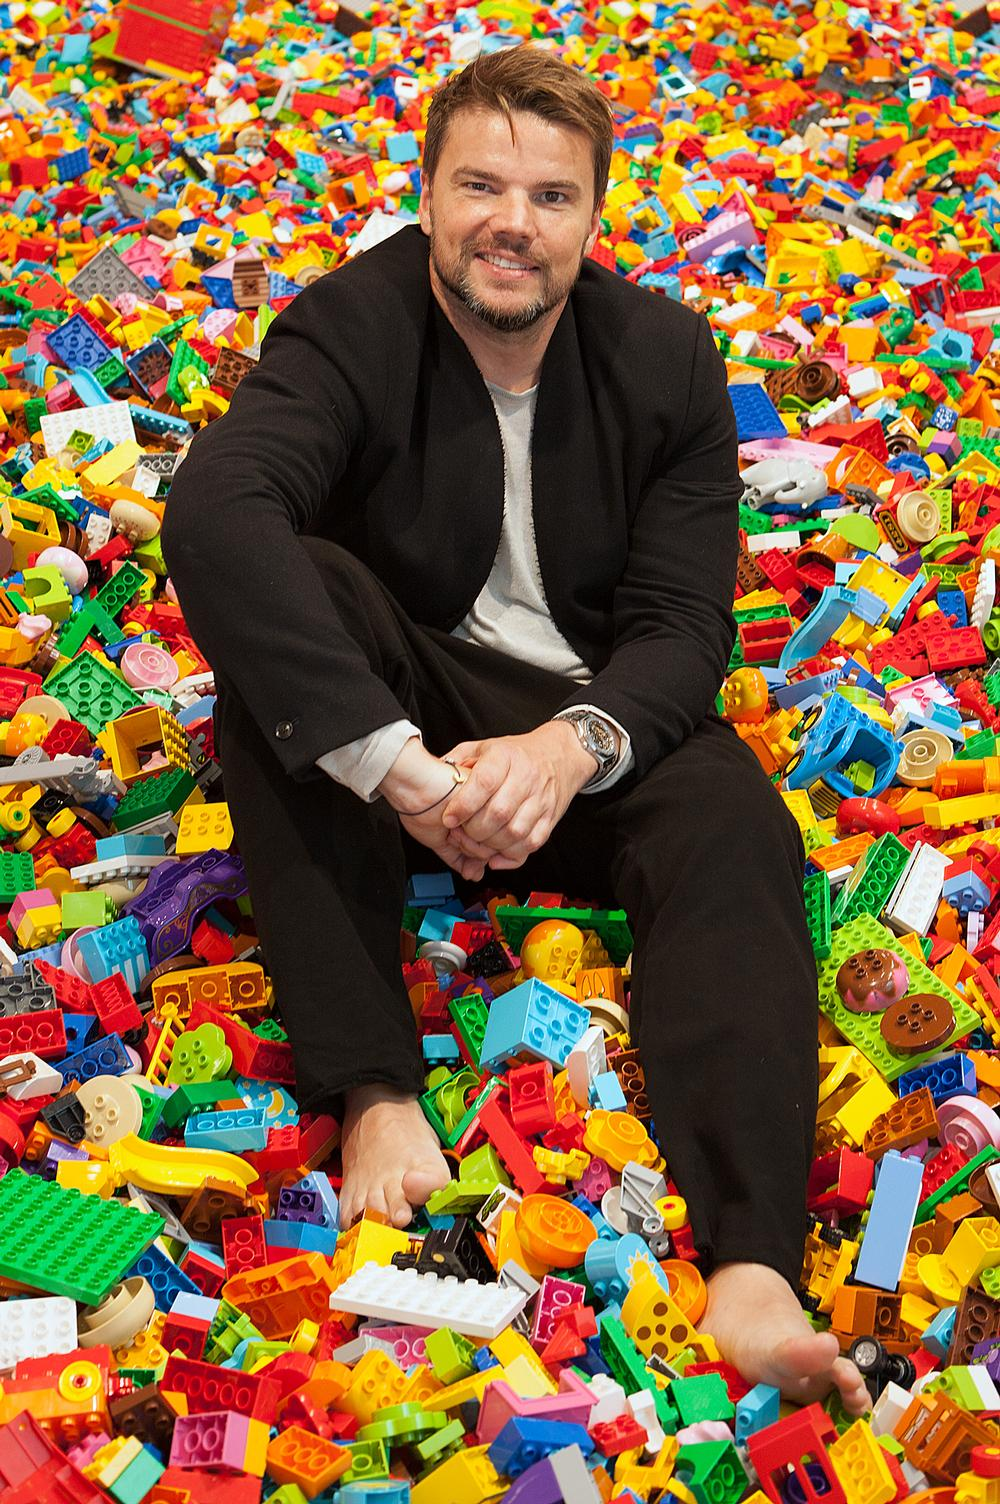 Ingels invited Lego super users to a workshop for feedback on BIG's Lego House designs / Photo: Paul McLaughlin